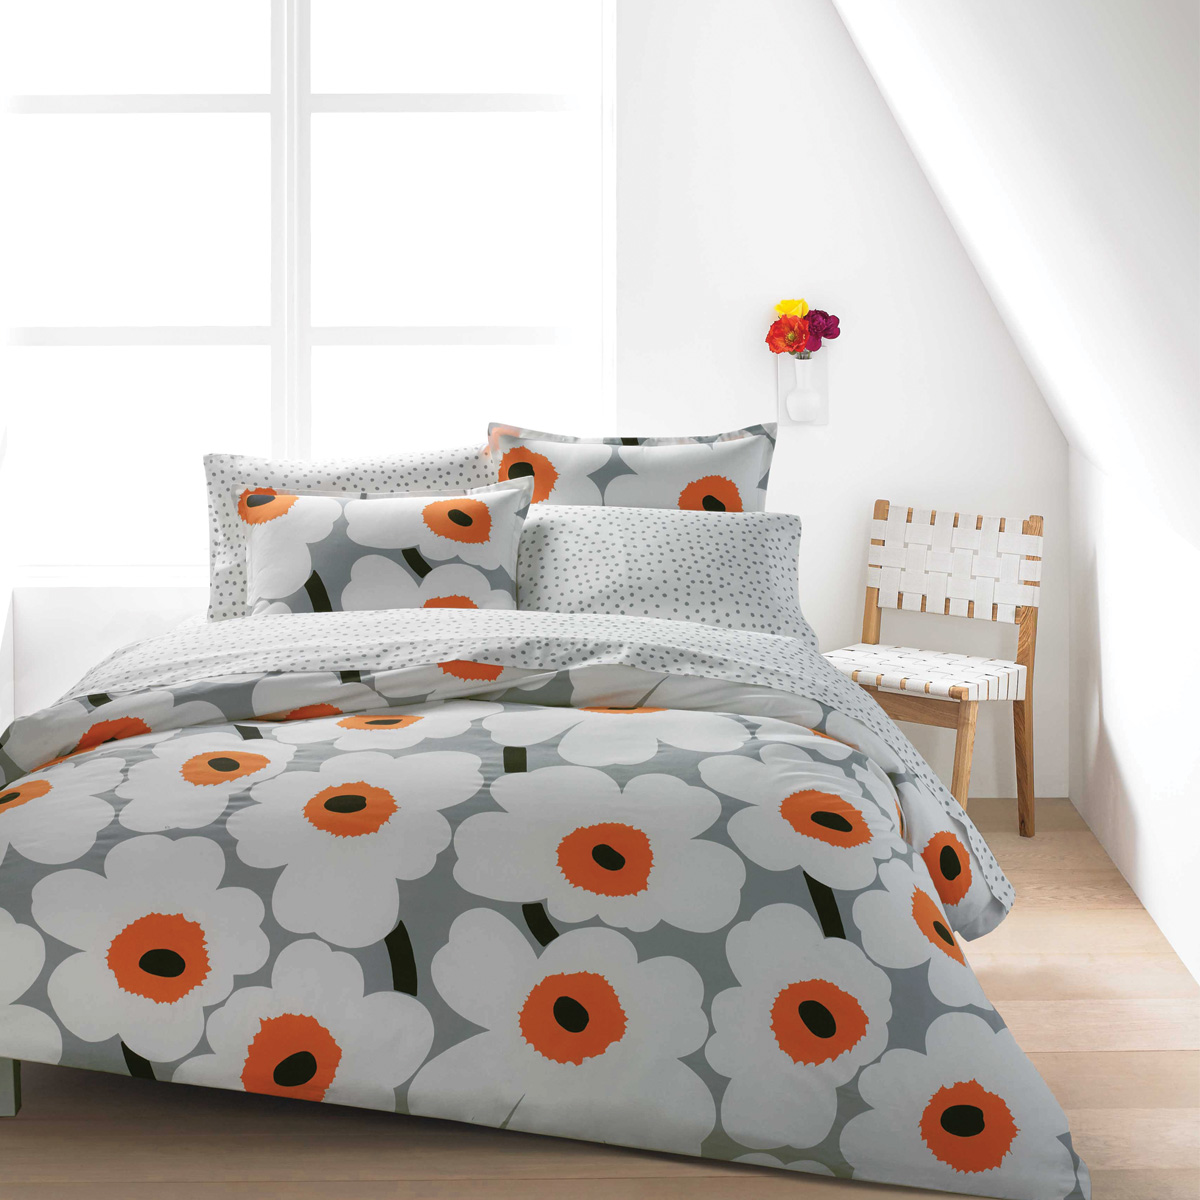 Marimekko Unikko Grey White Orange Percale Bedding